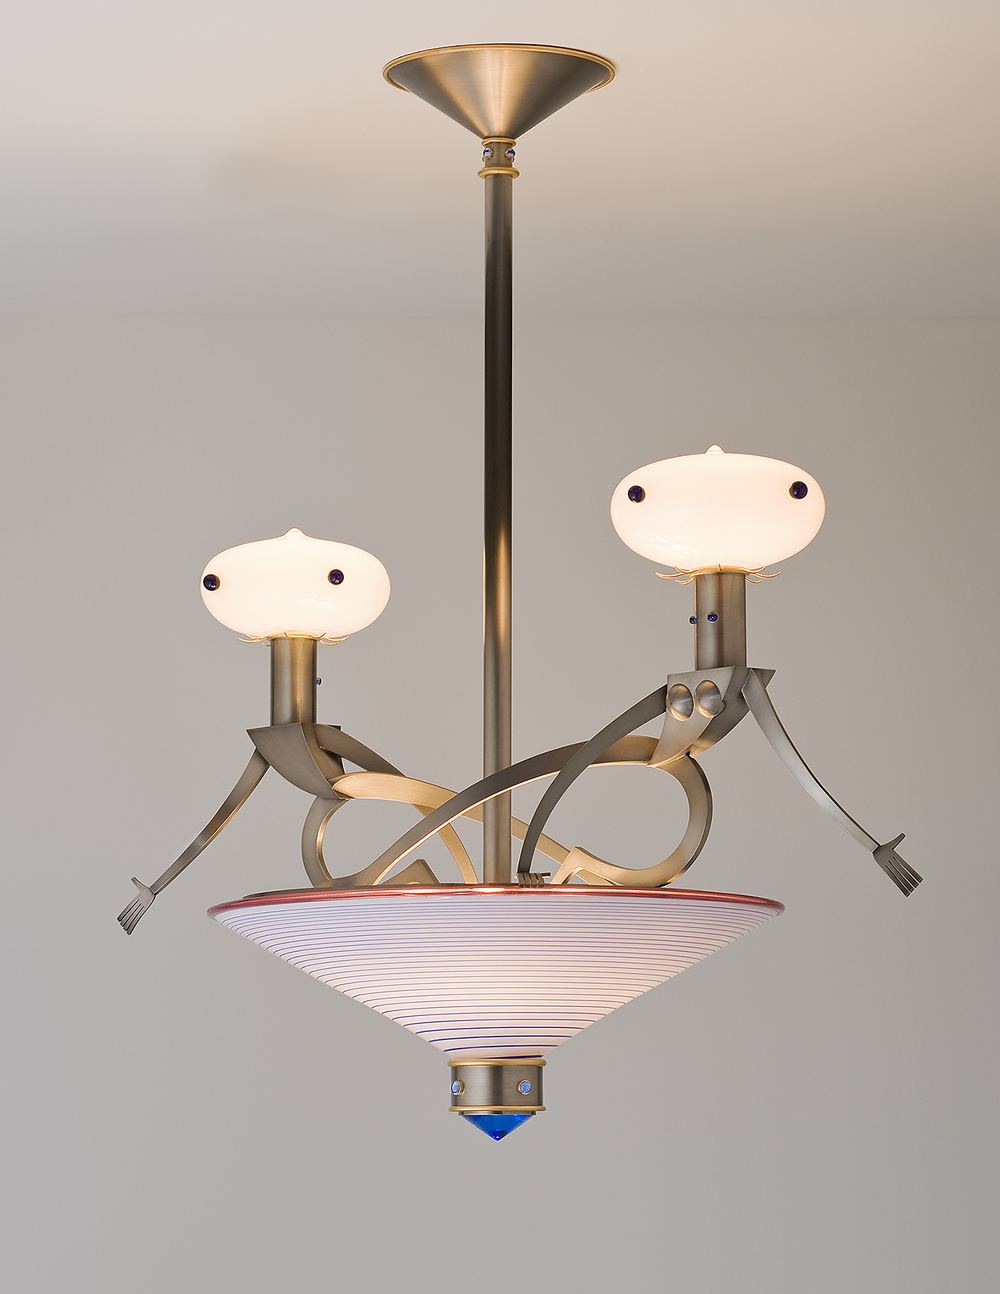 Figurative Chandelier   2007. Blown glass, nickel and gold-plated bronze, brass, aluminum, steel and lampworked glass. 32 x 35 x 21""